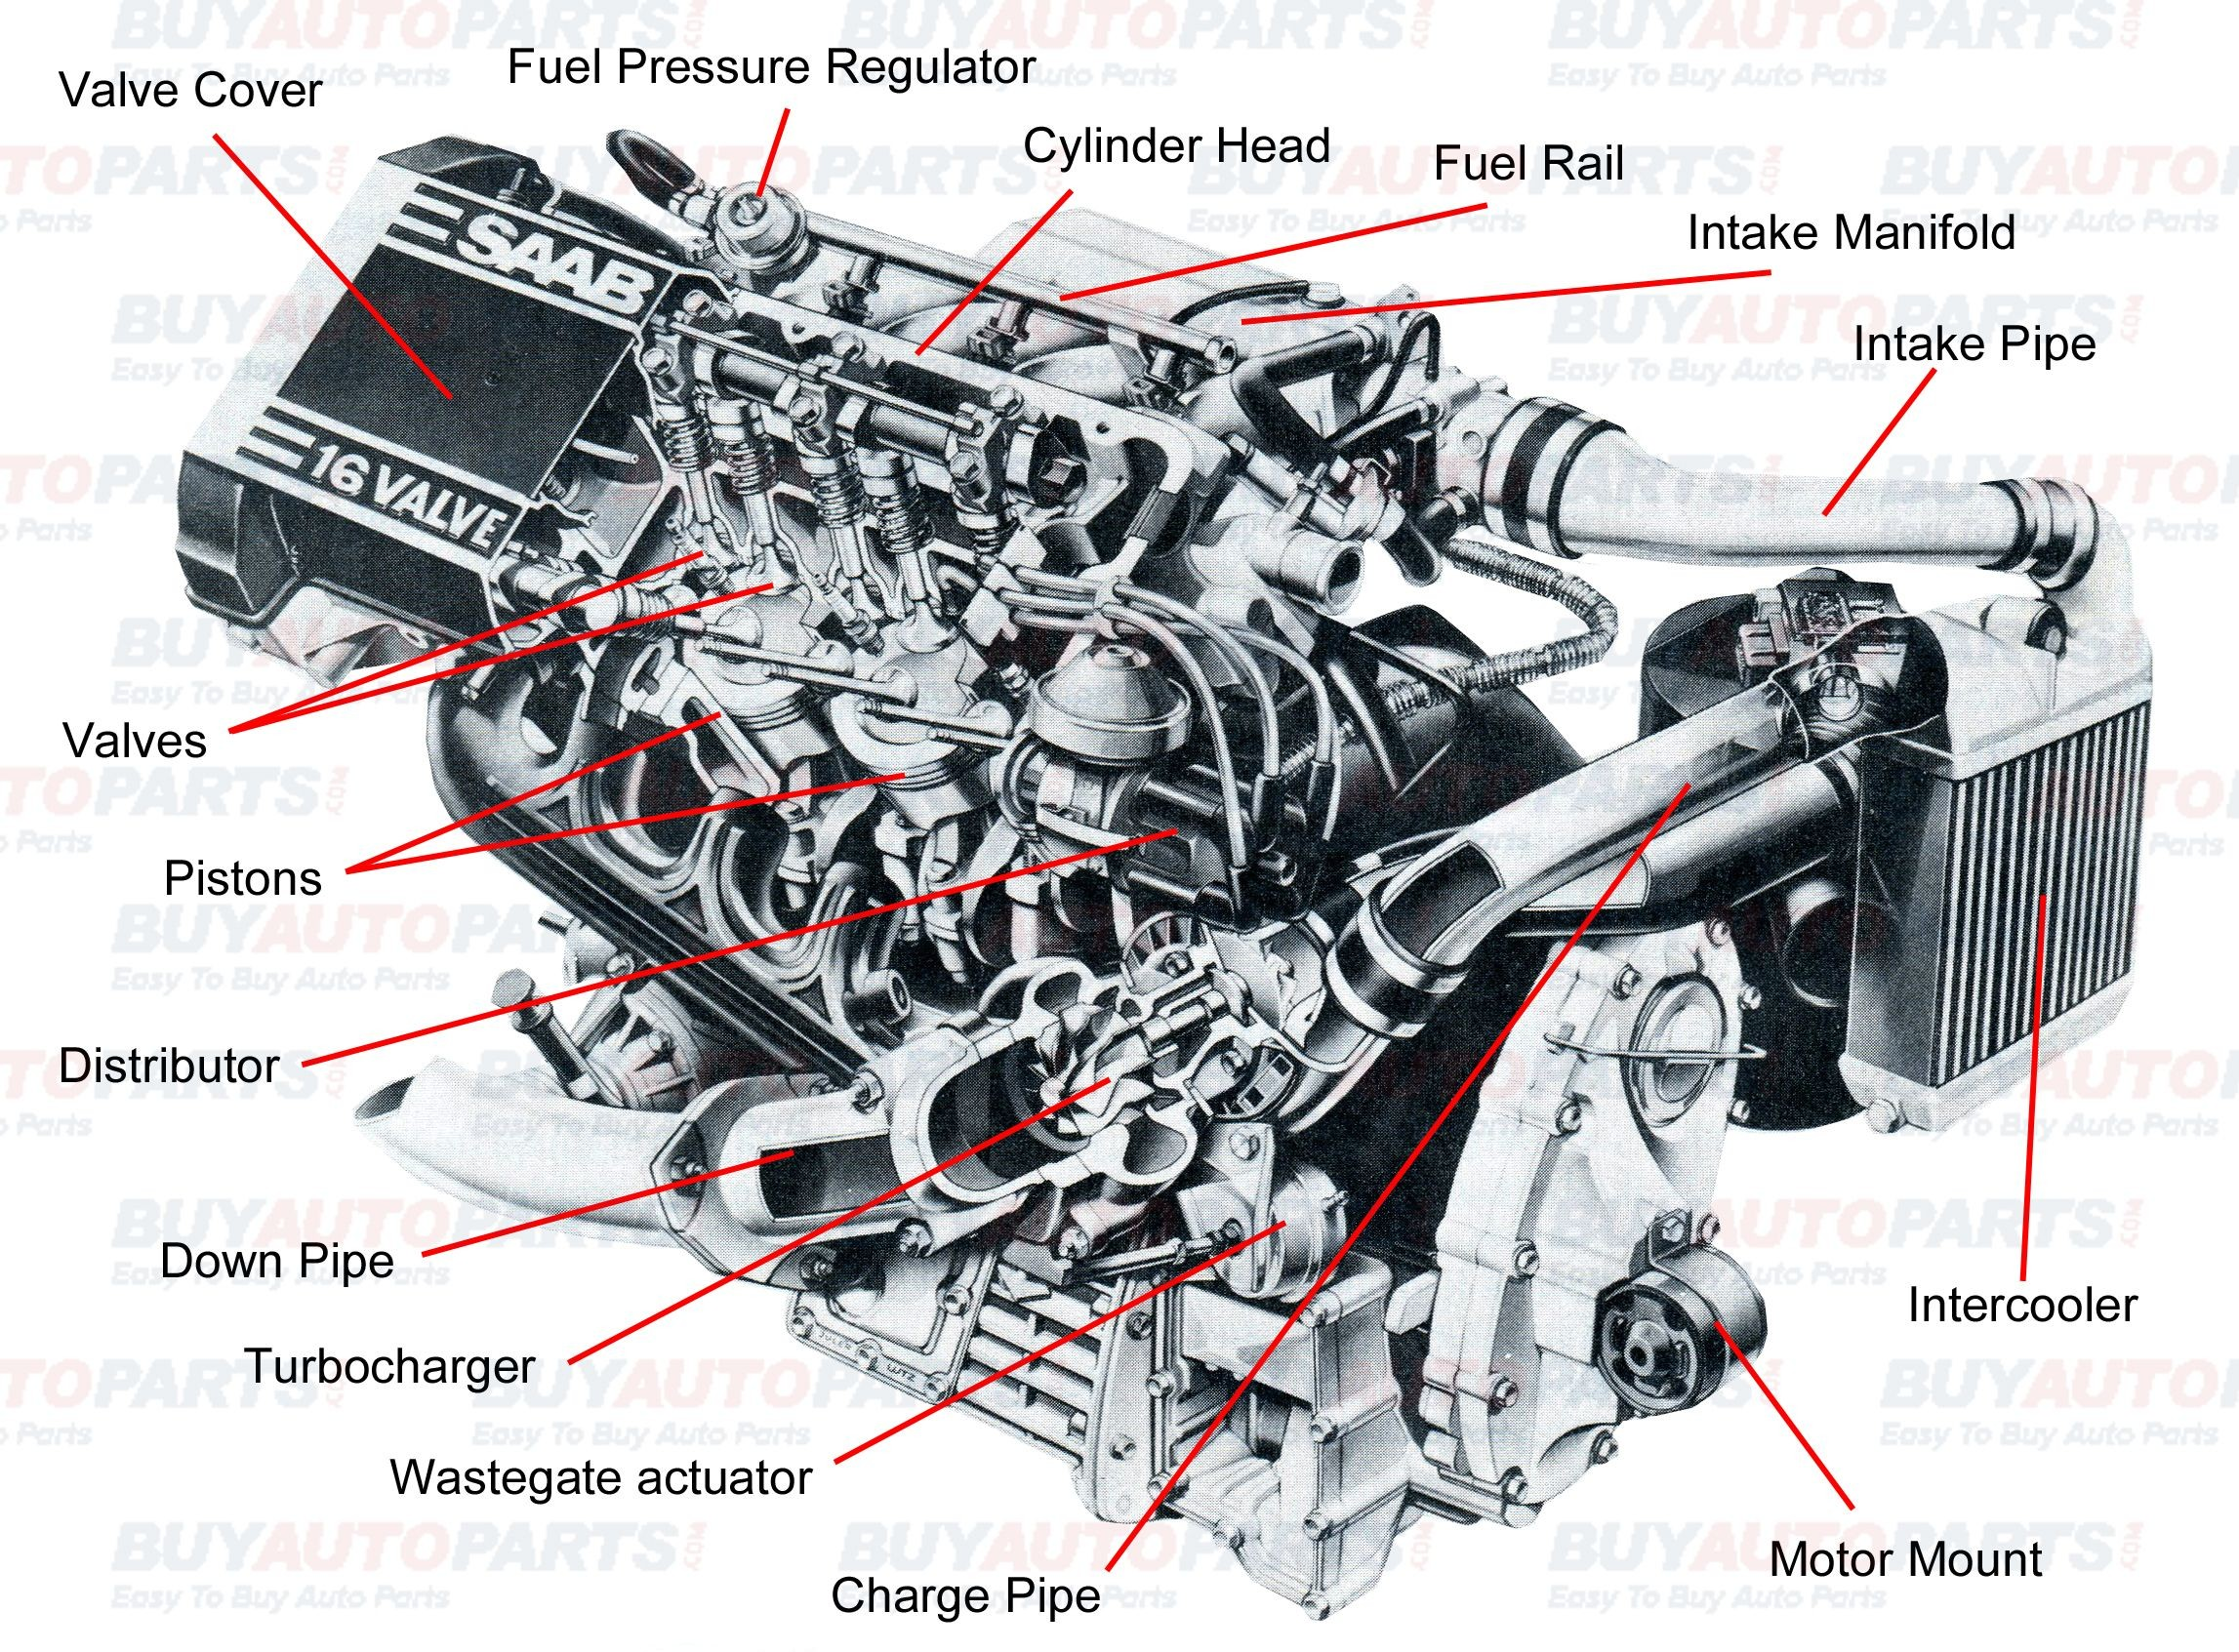 Car Exhaust System Diagram All Internal Bustion Engines Have the Same Basic Ponents the Of Car Exhaust System Diagram